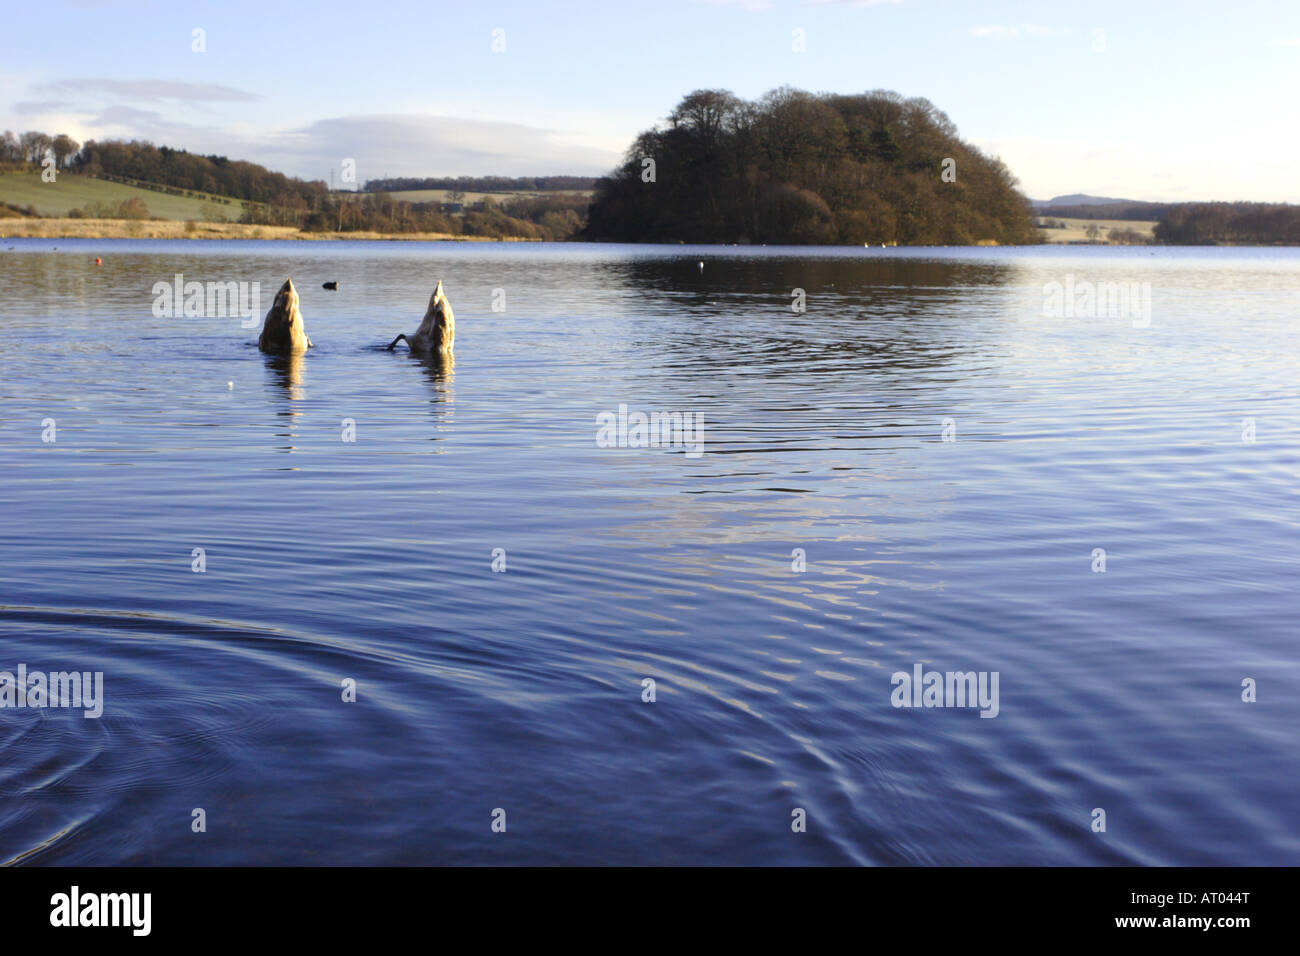 Swans Upending at Gartmorn Dam Country Park and Nature Reserve. - Stock Image